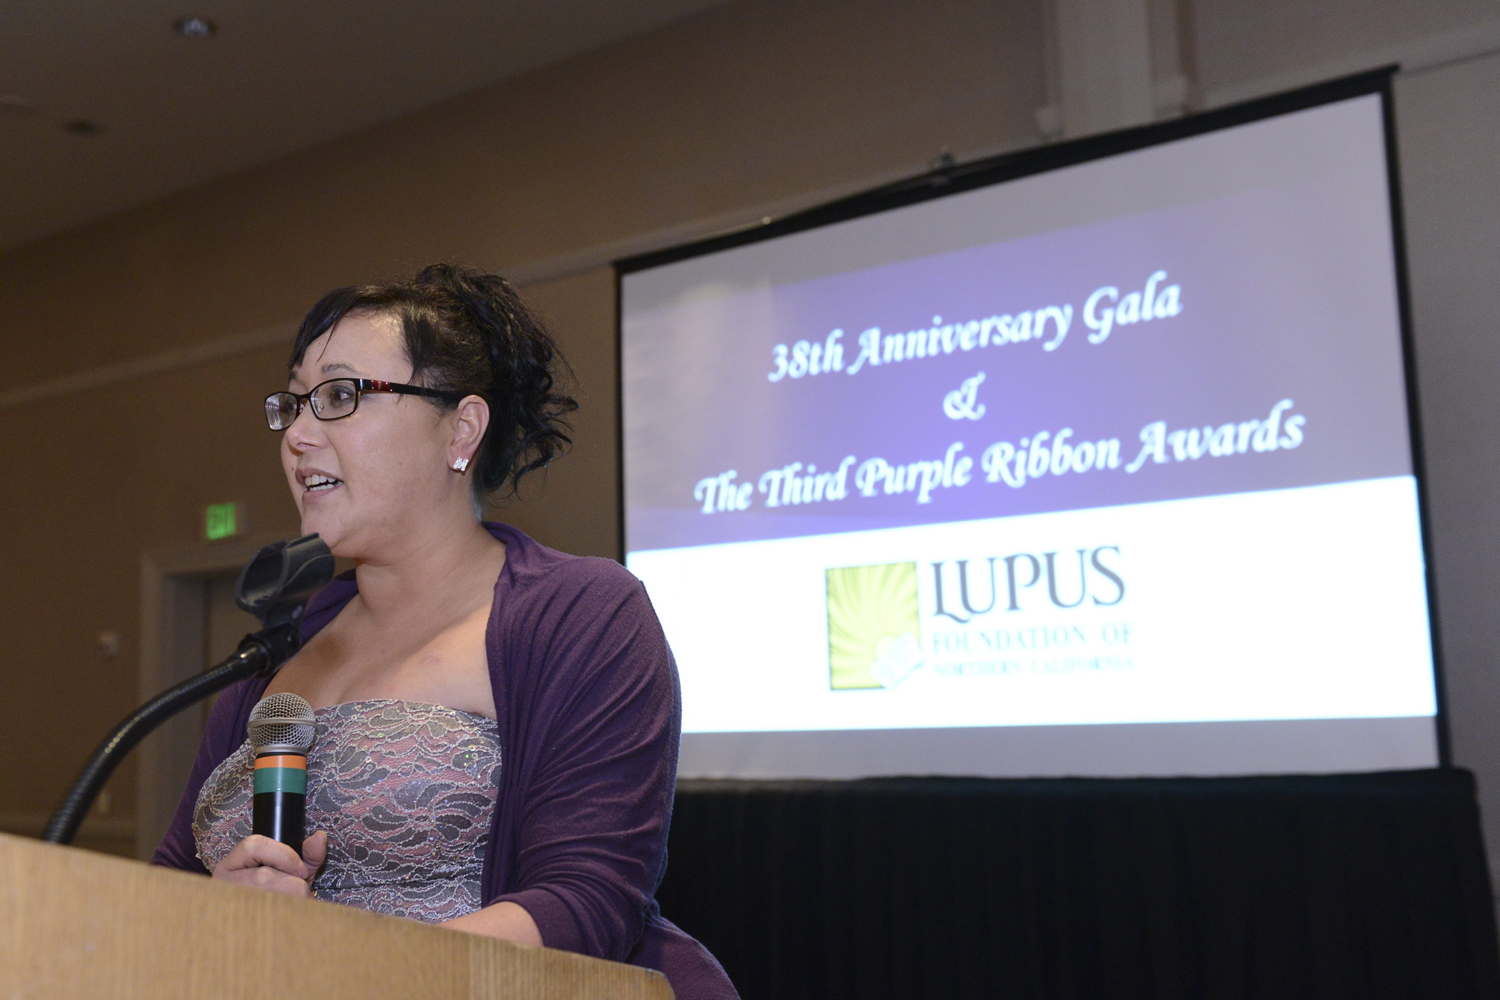 Christine Von Raesfeld speaks at the Lupus Foundation of Northern California's 38th Anniversary Gala (Photo courtesy of the  Lupus Fo  undation of Northern California).